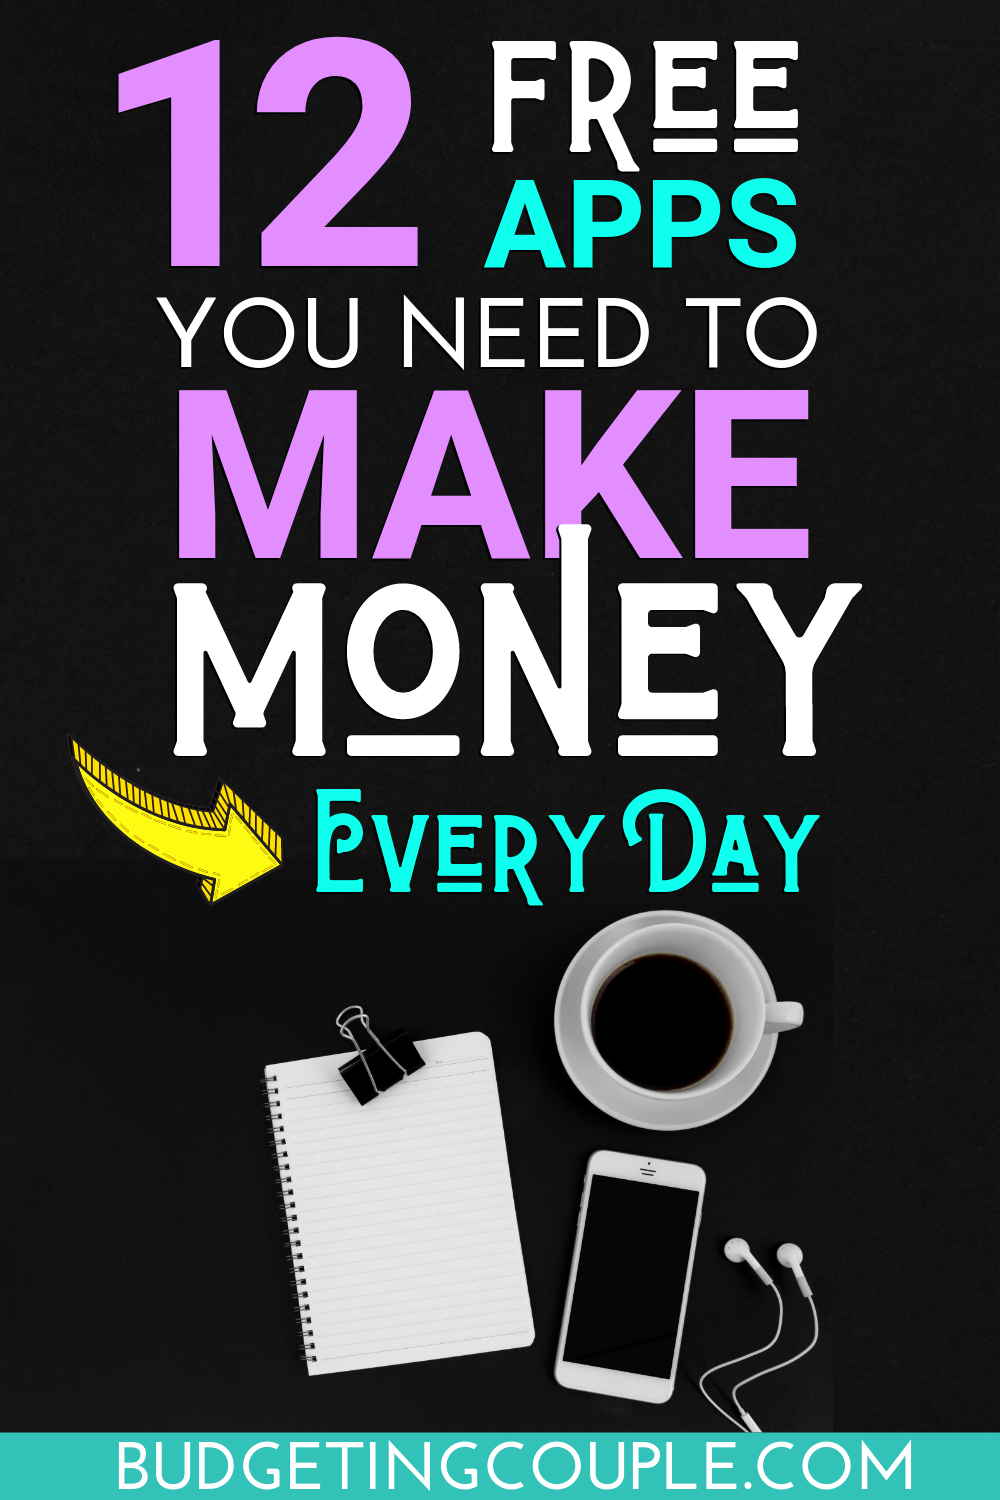 These (free) money making apps are your key to getting an